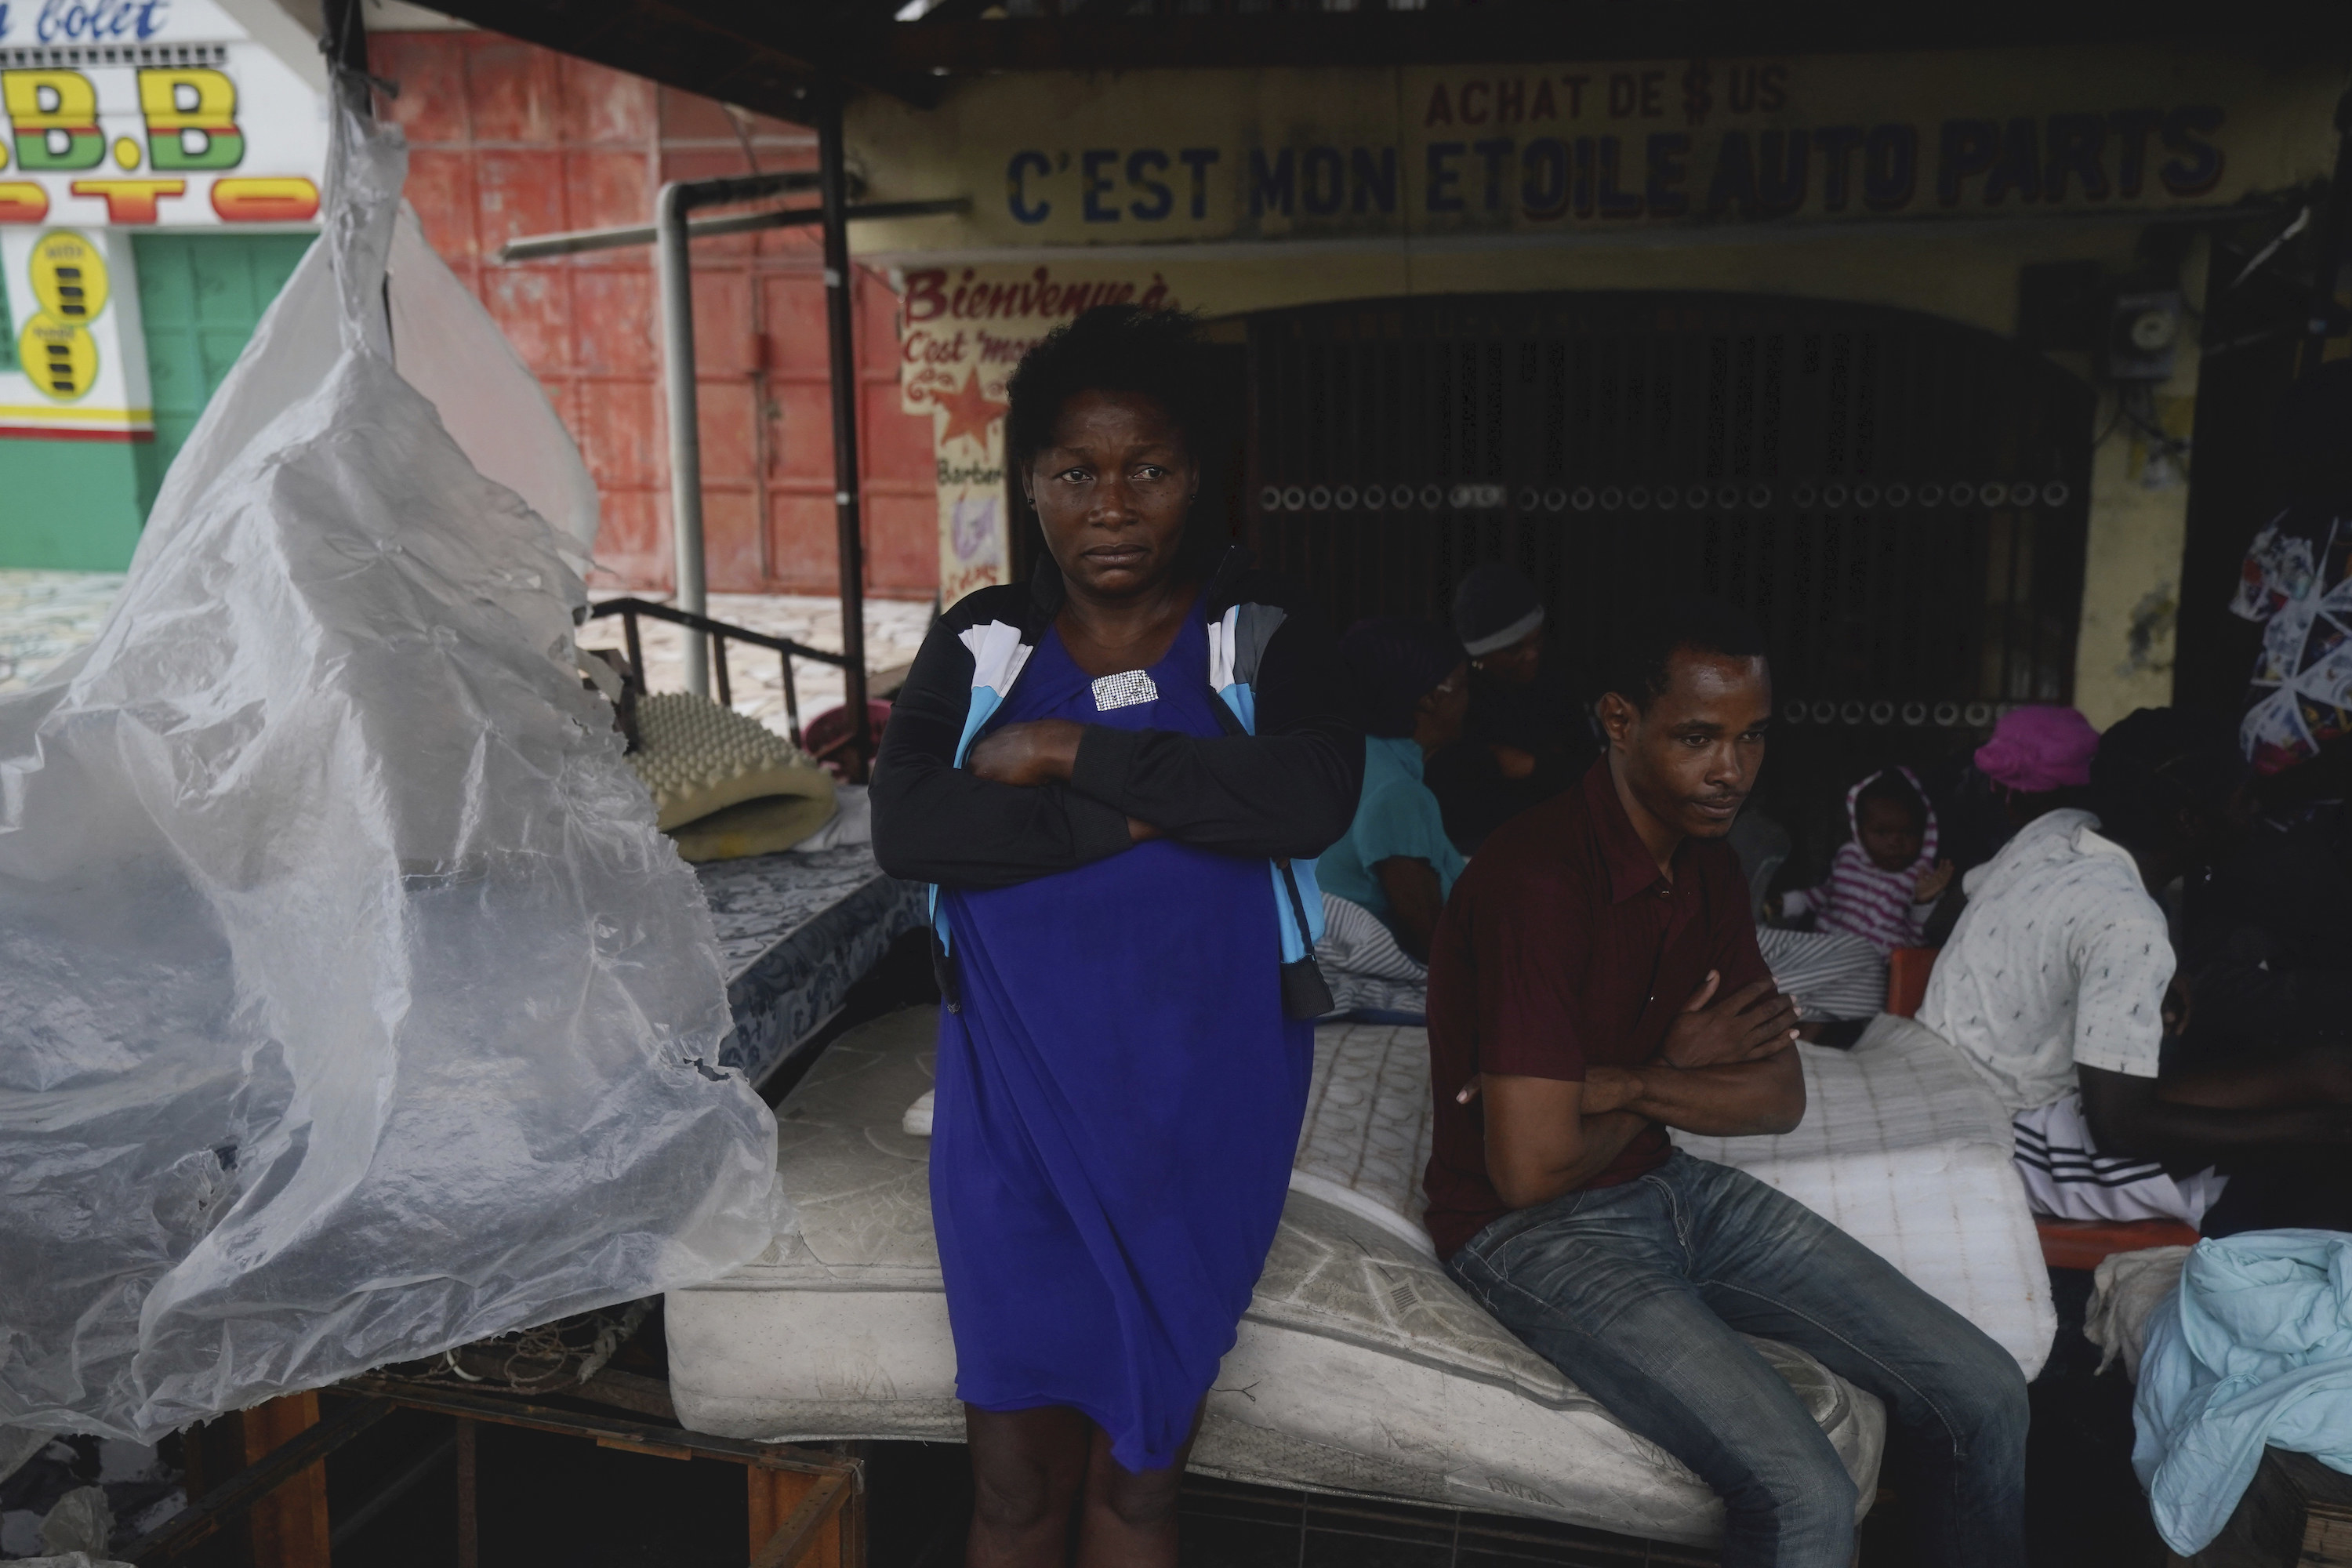 Haitian residents sit and lean against a mattress outside under an awning